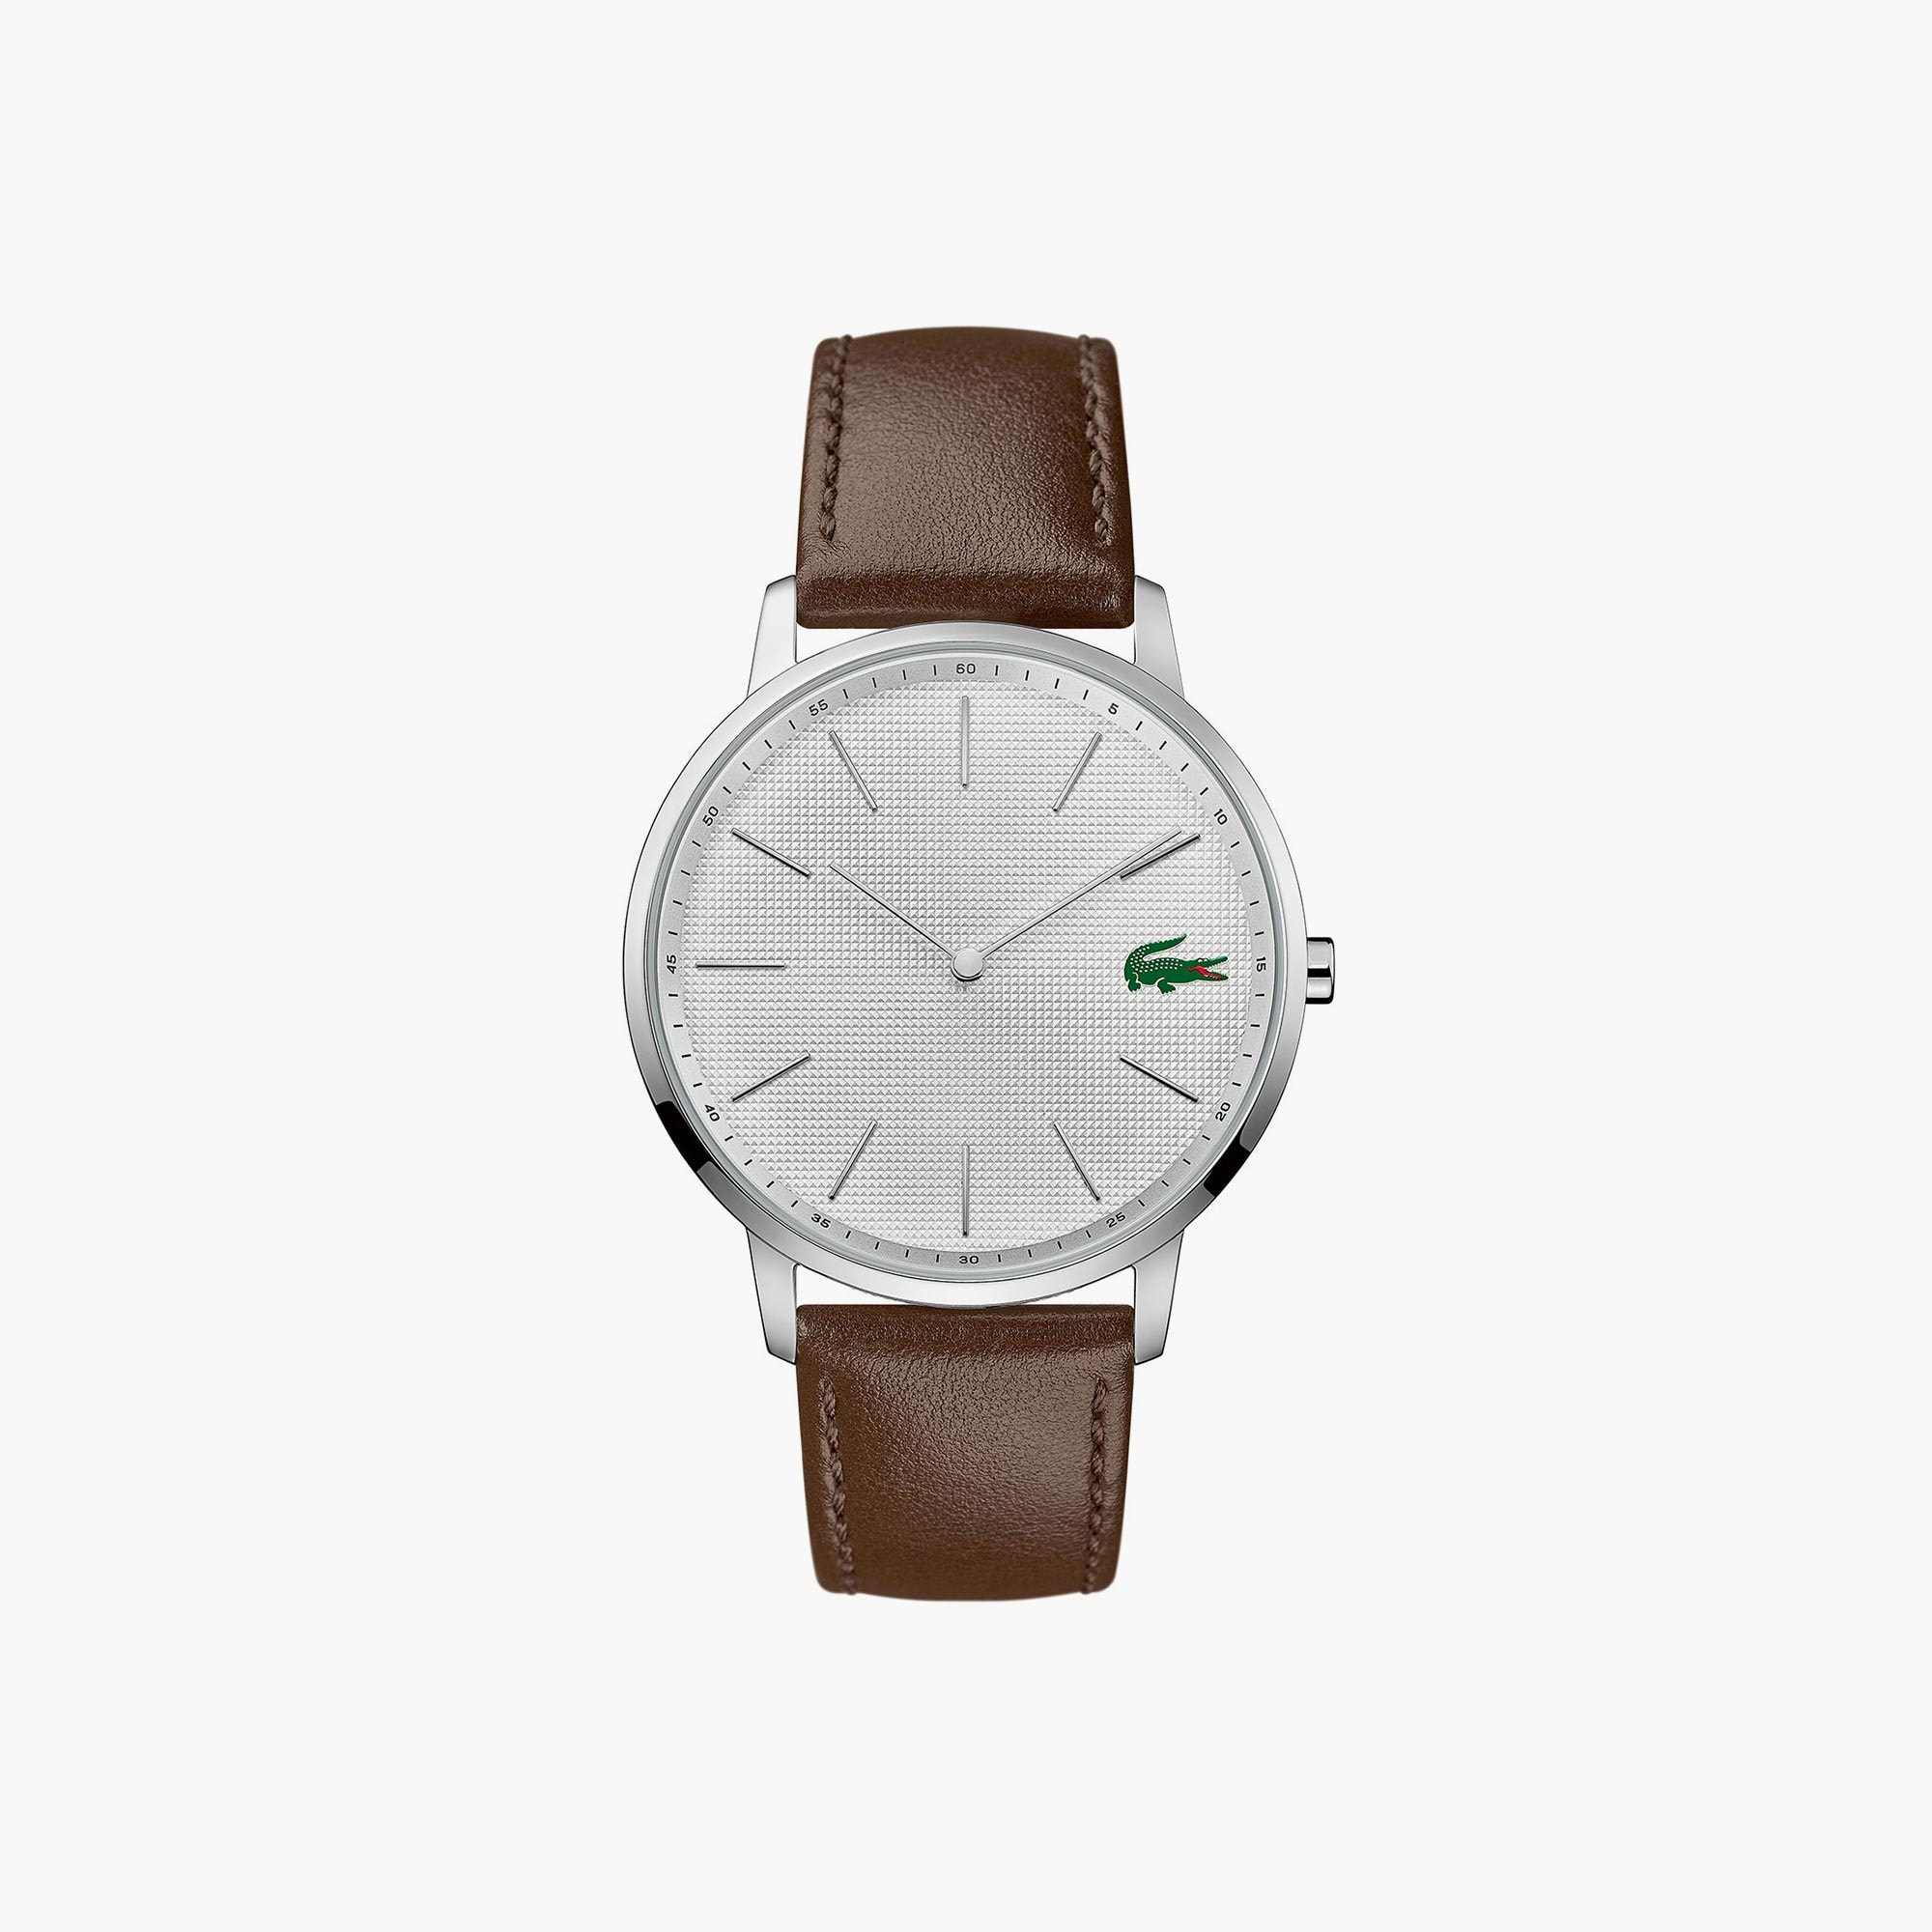 Gents Moon Watch With Brown Leather Strap And Stainless Steel Dial